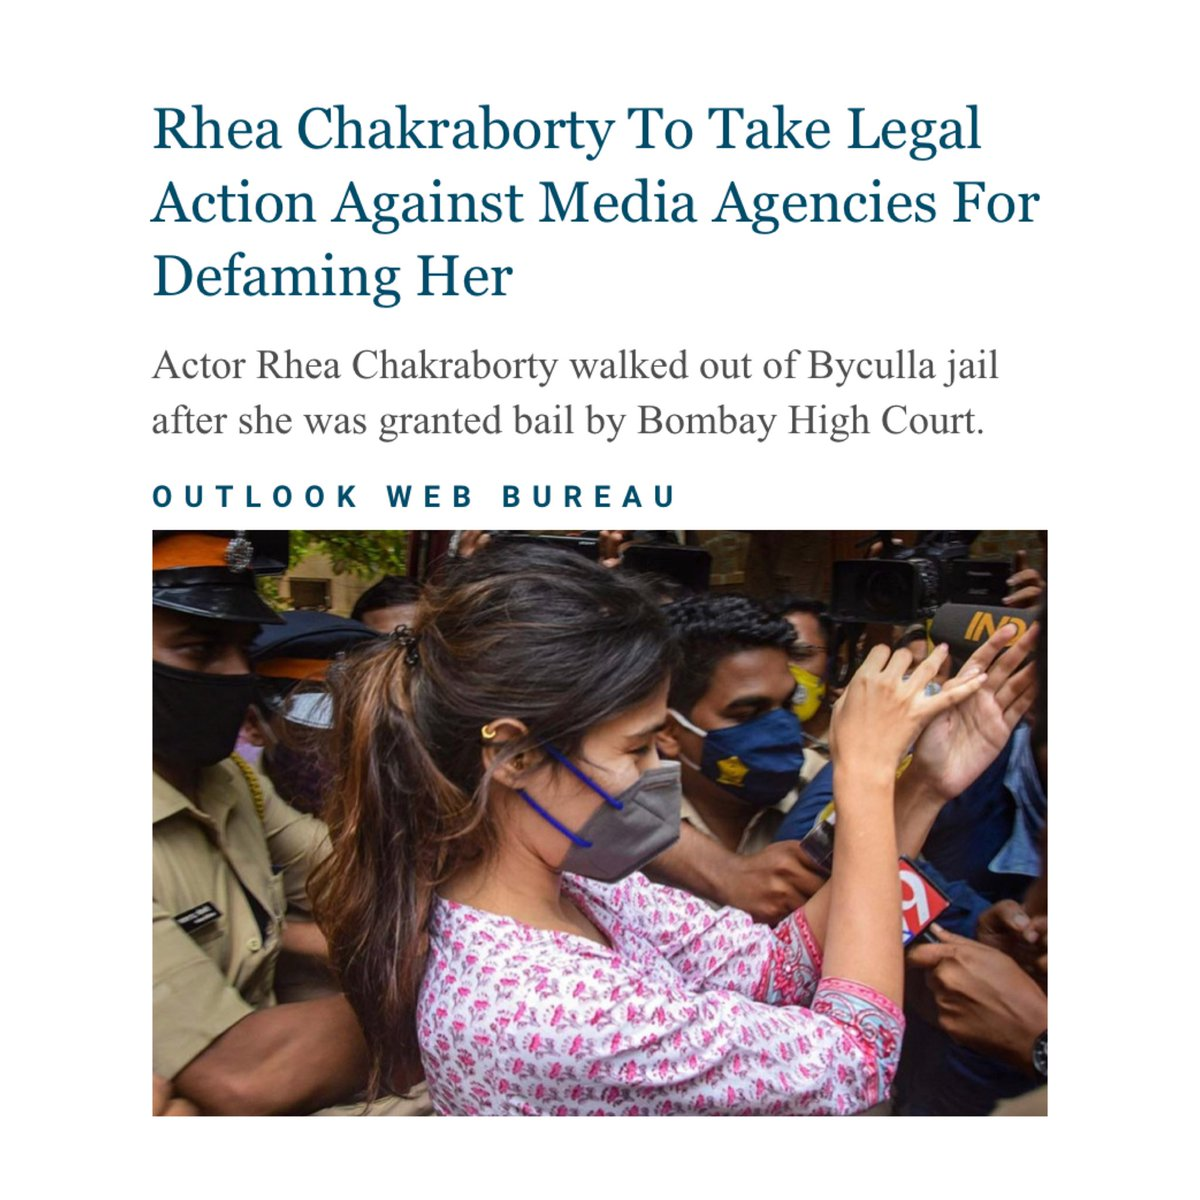 As a media and free speech lawyer, I'm rarely glad to see  defamation cases. Very glad to see Ms. Chakraborty's intention. I hope it acts as a corrective.